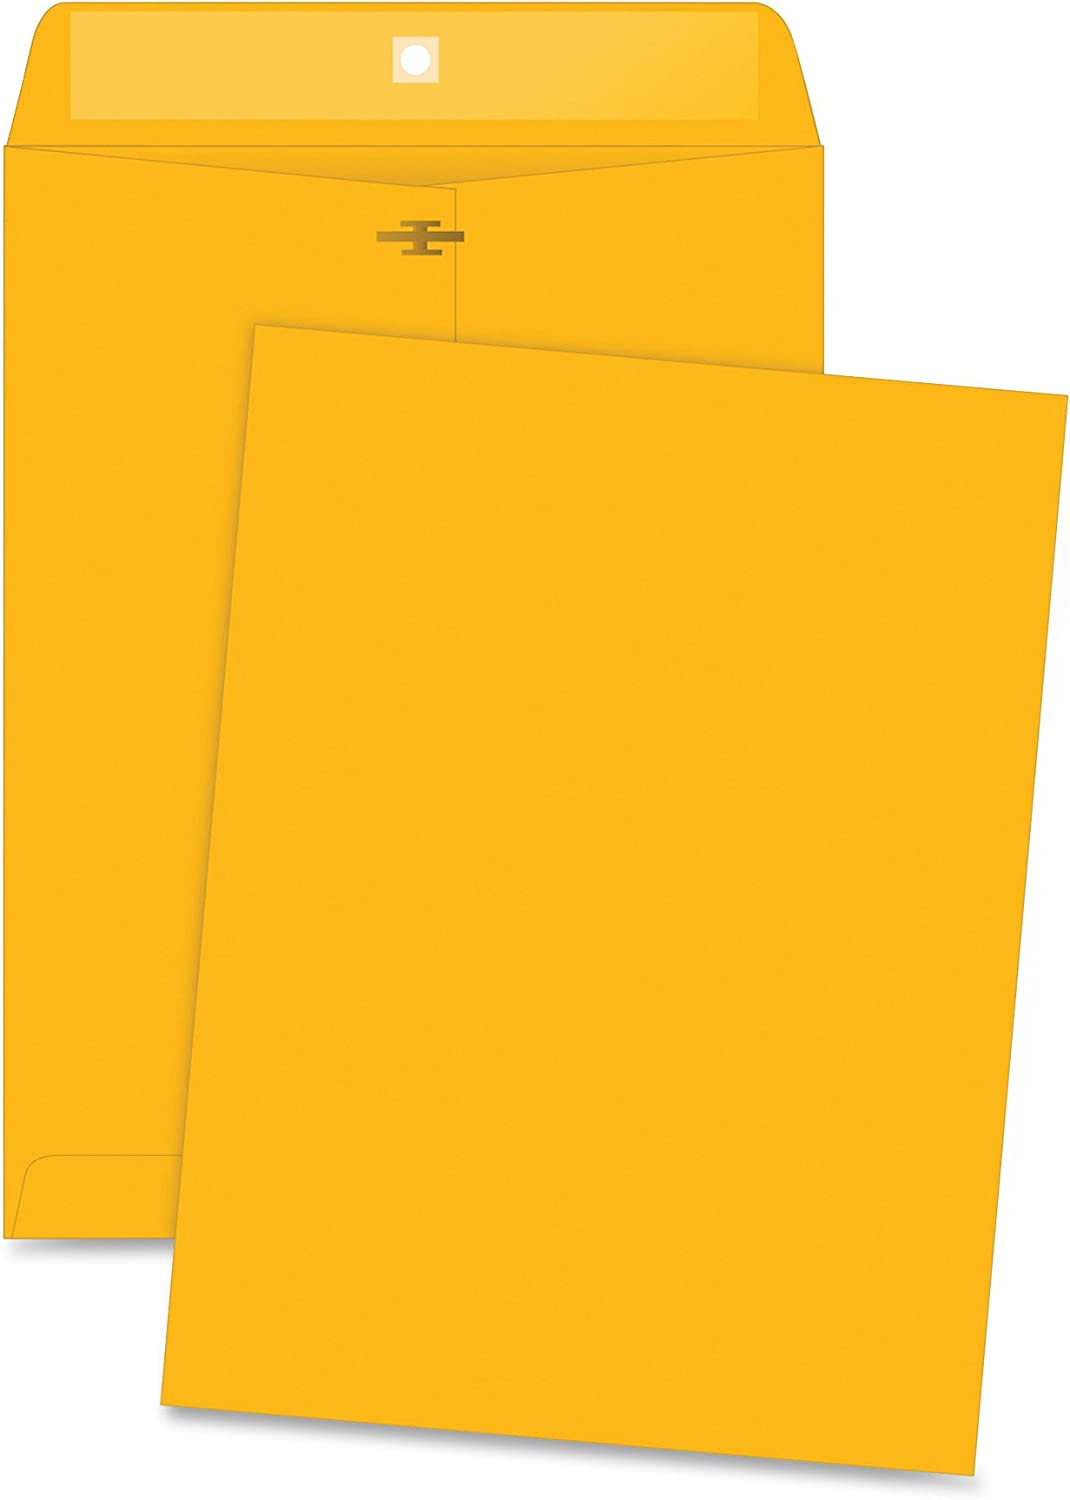 36664 9-1//2x12-1//2 Business Source Clasp Envelopes Clasp Enevelope